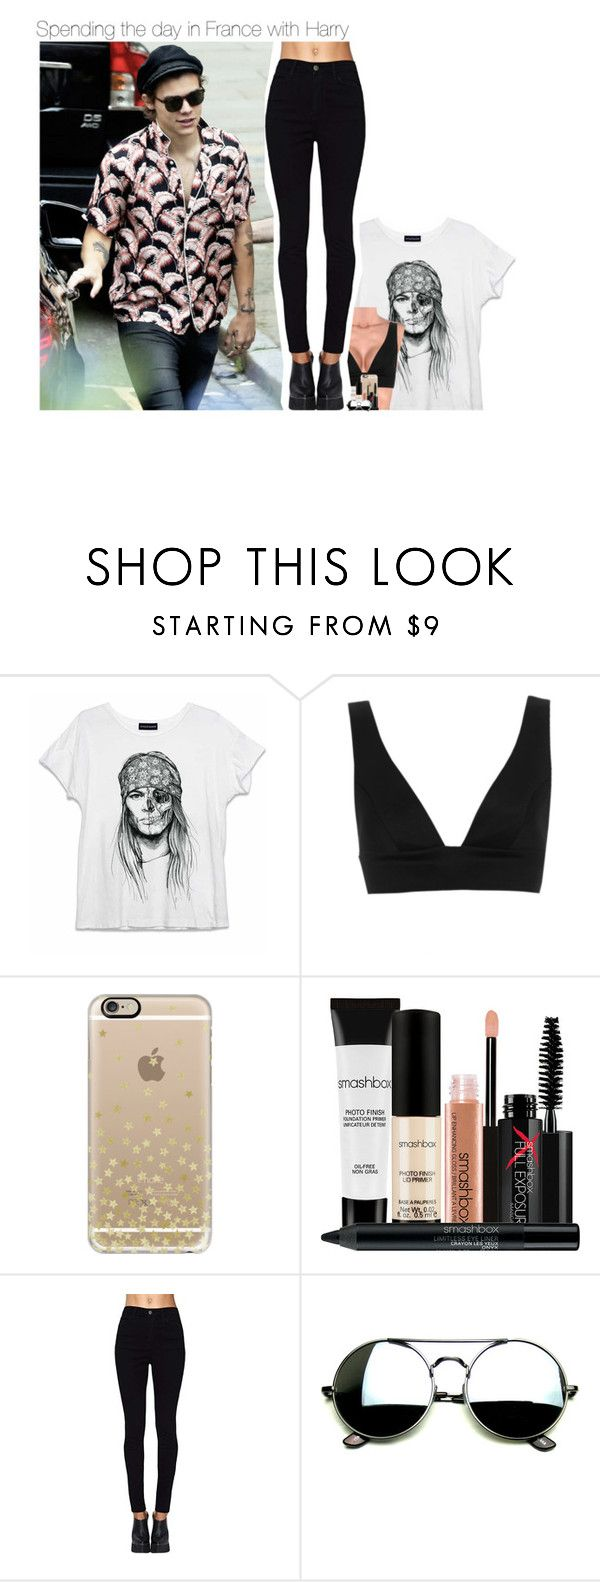 """""""Spending the day in France with Harry"""" by talitastyles ❤ liked on Polyvore featuring Topshop, Casetify and Smashbox"""